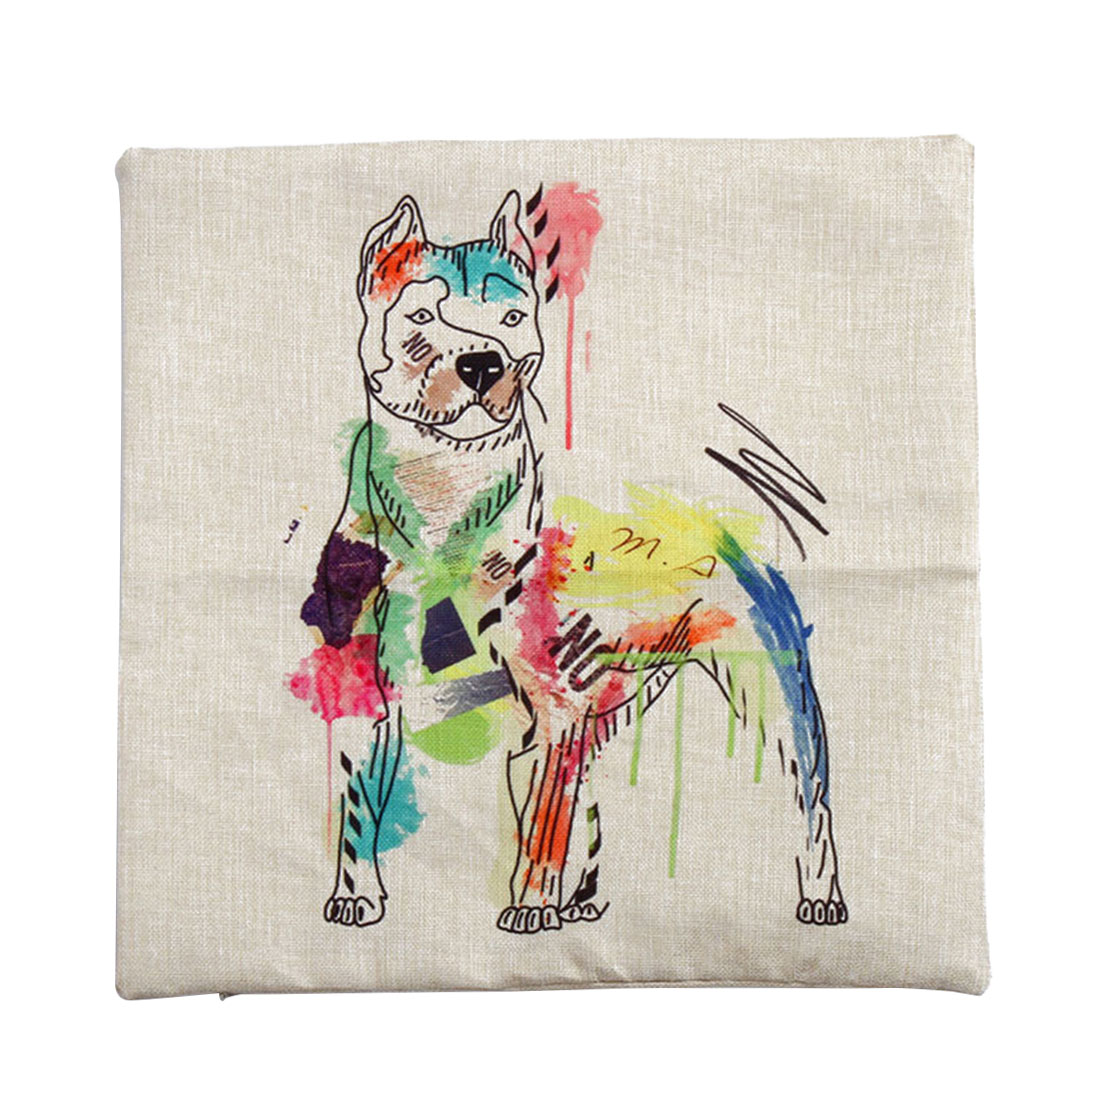 Piccocasa Linen Painting Dog Face Pattern Pillowcase Cushion Cover 45 x 45cm - image 7 of 7